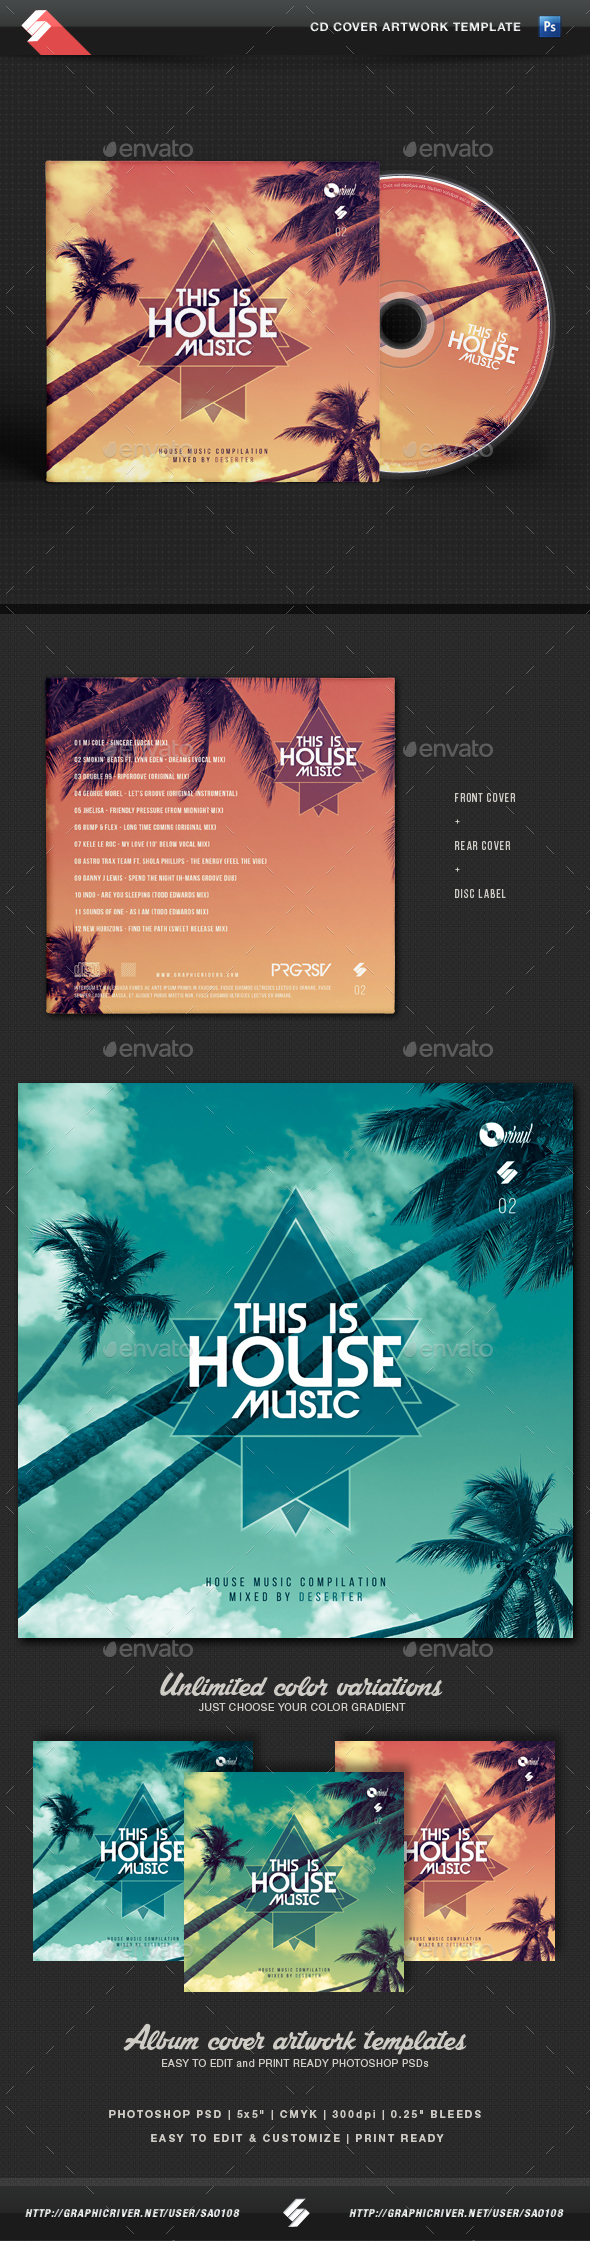 This is house music vol 2 cd cover artwork template for House music cover